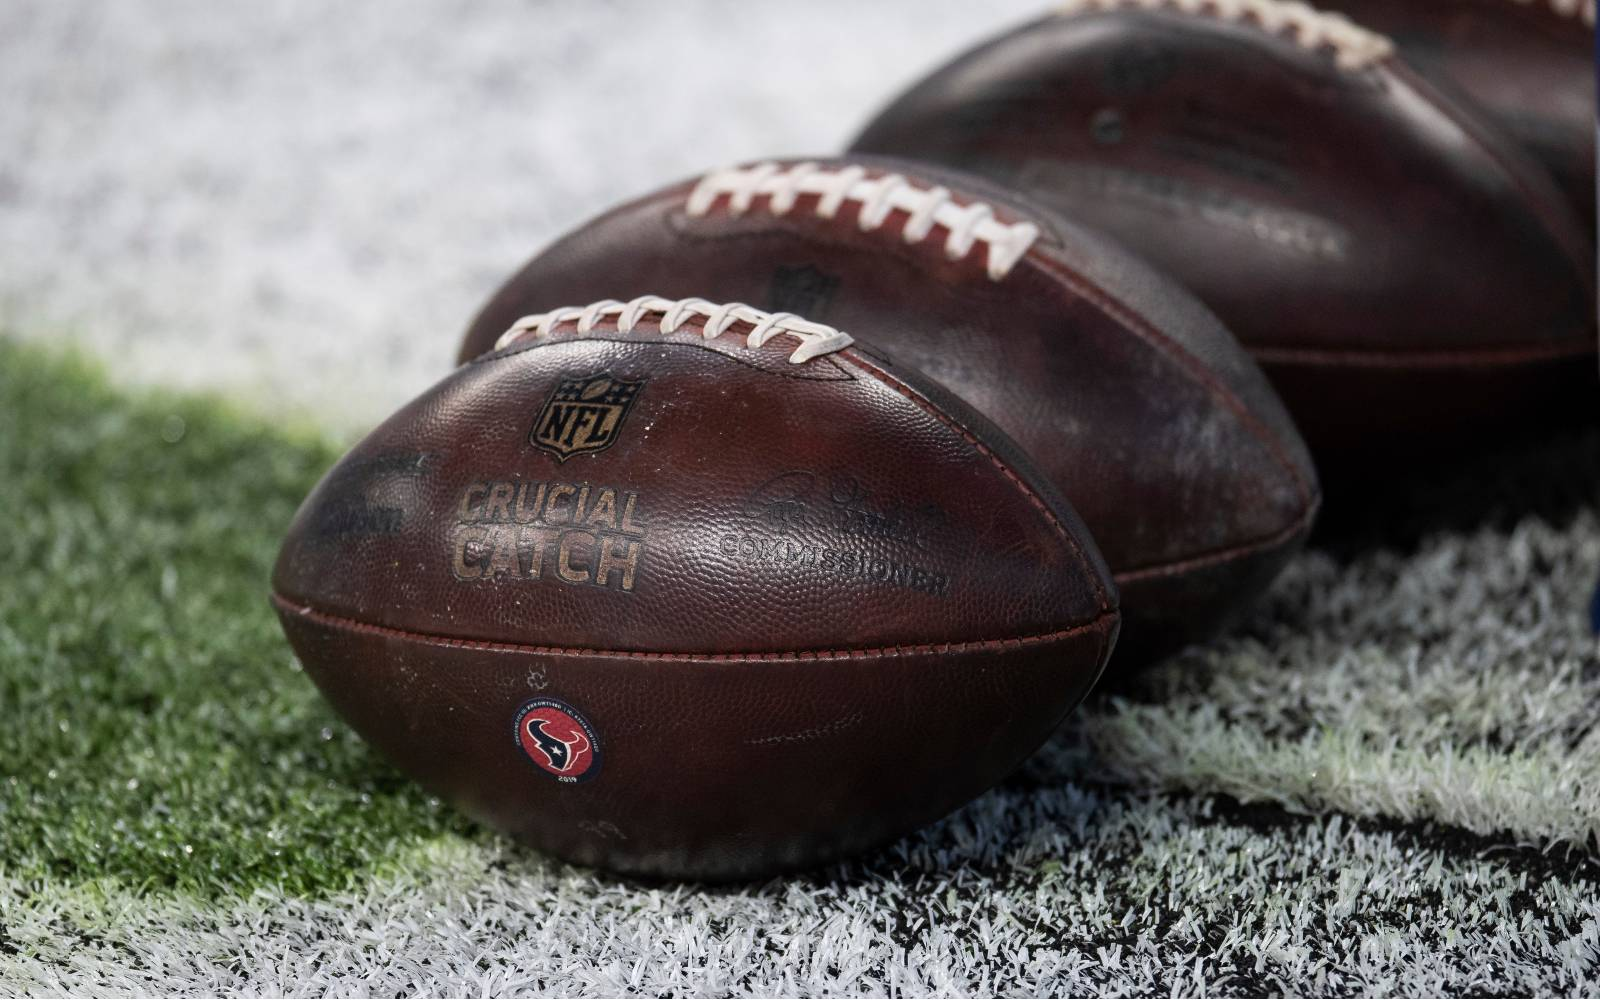 Leather NFL footballs